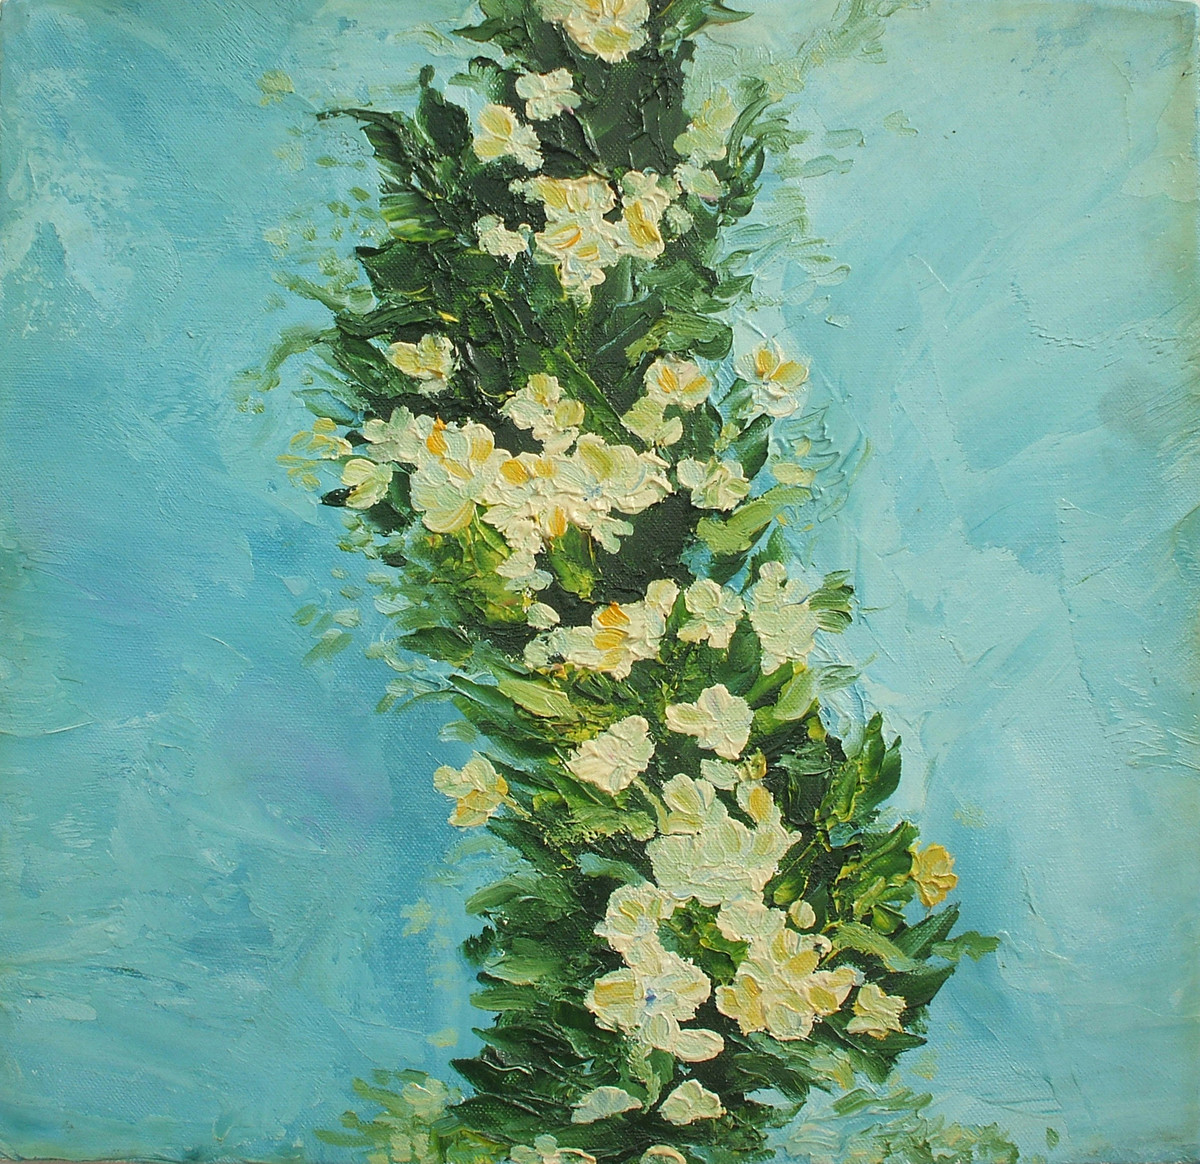 Flowering Bough-4 /White Flowers by Animesh Roy, Expressionism Painting, Oil on Canvas, Cyan color